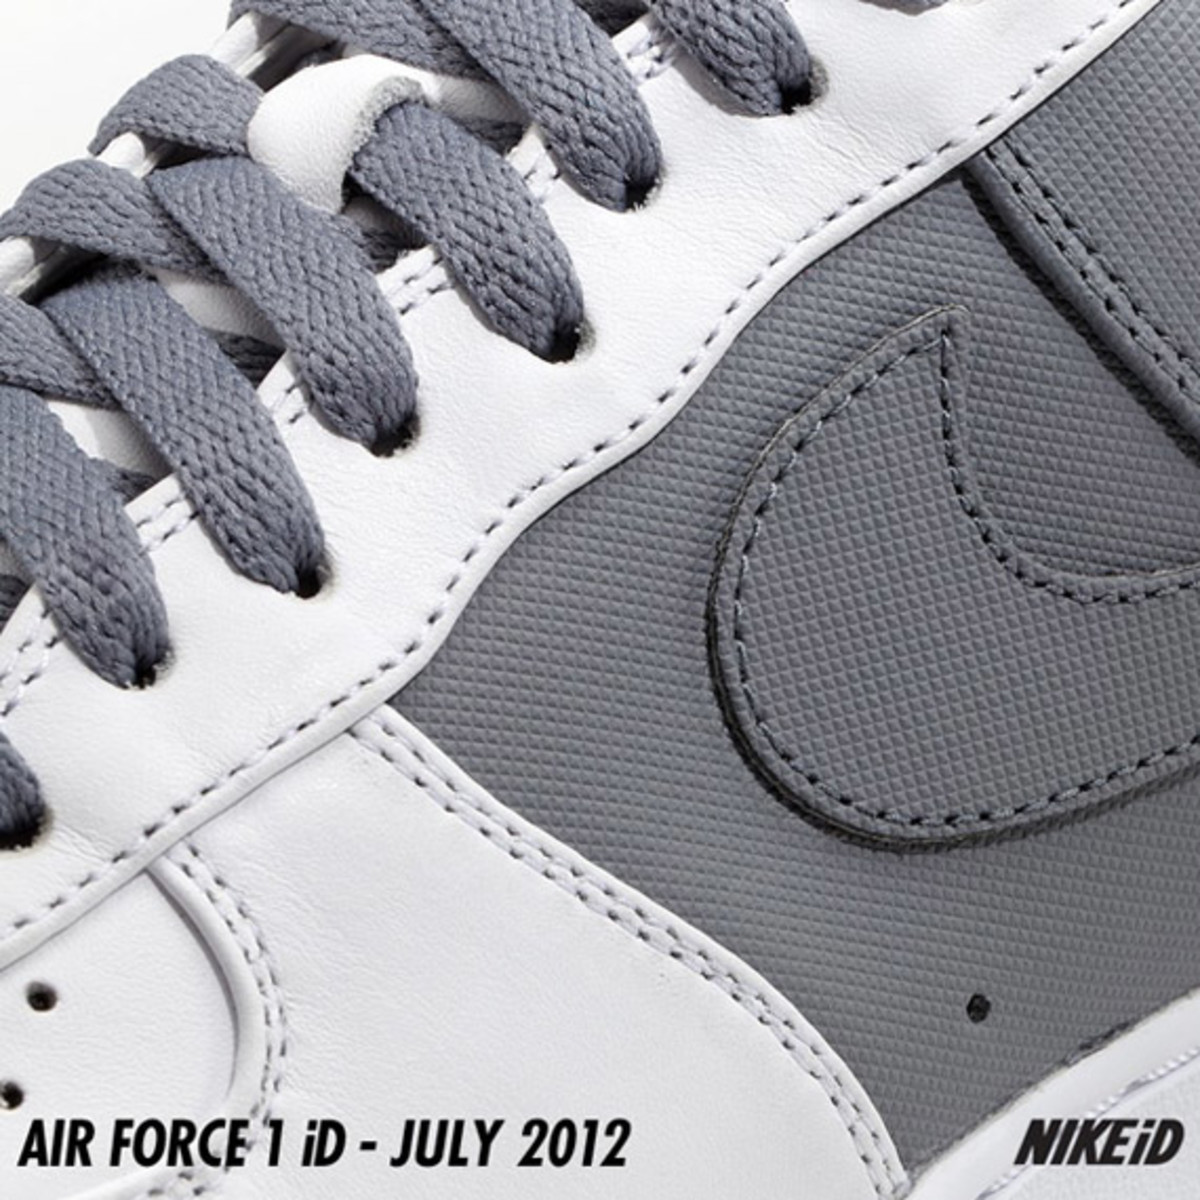 nikeid-air-force-1-id-tactical-mesh-grip-leather-design-july-2012-10